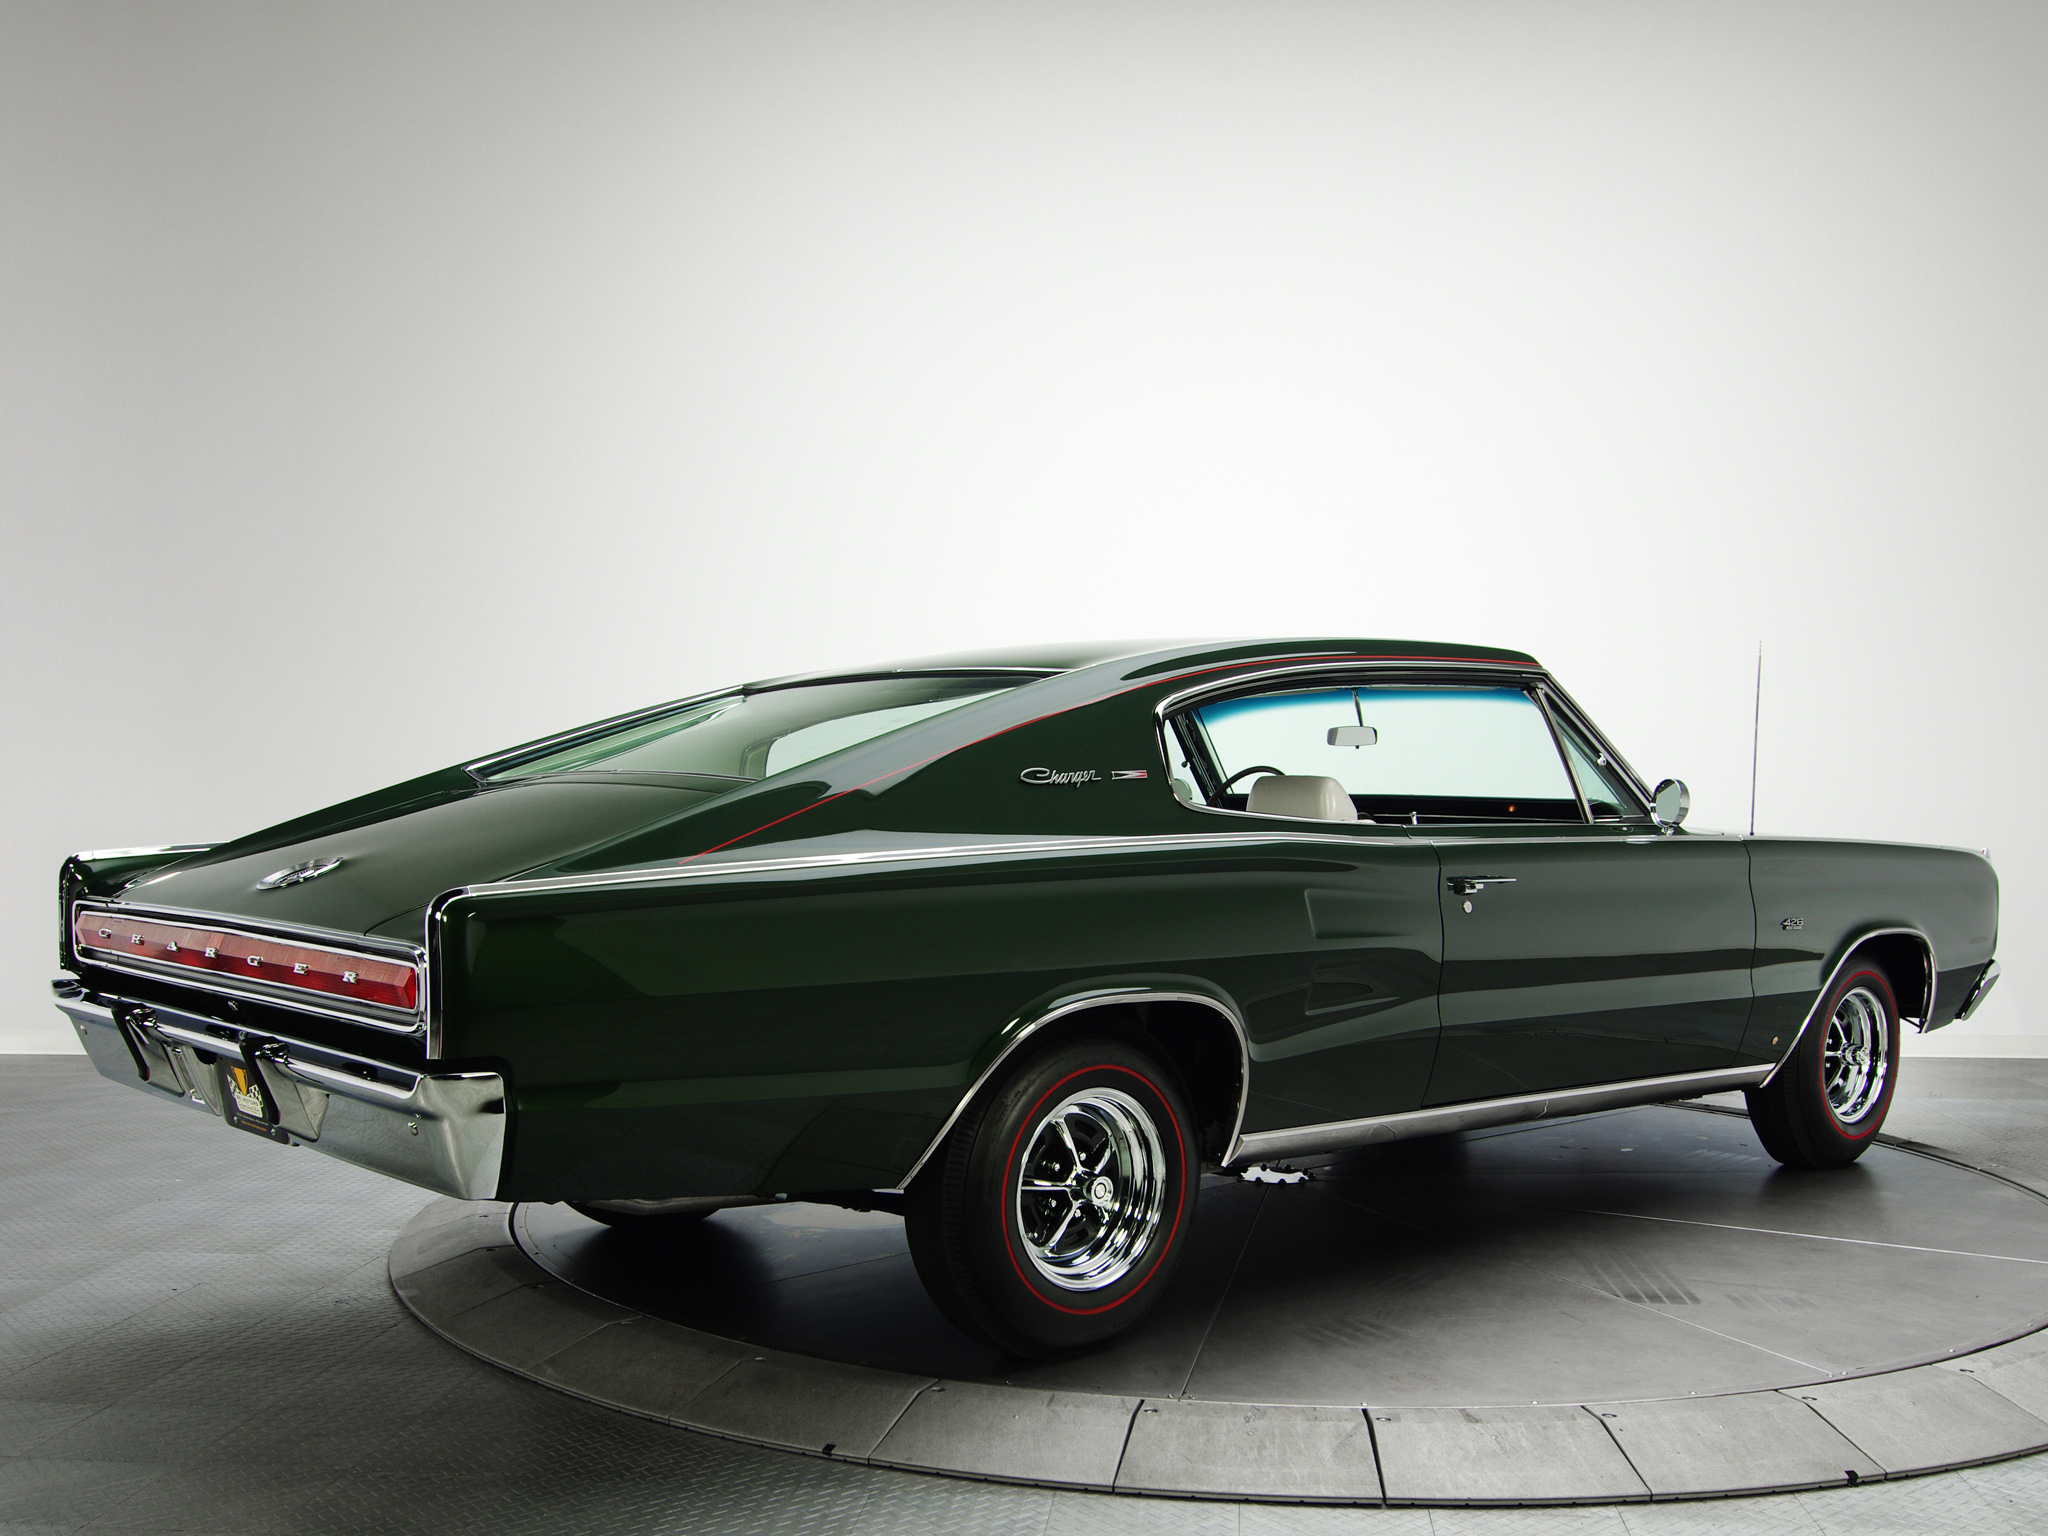 1967 Dodge Charger R-T 426 Hemi muscle classic    d